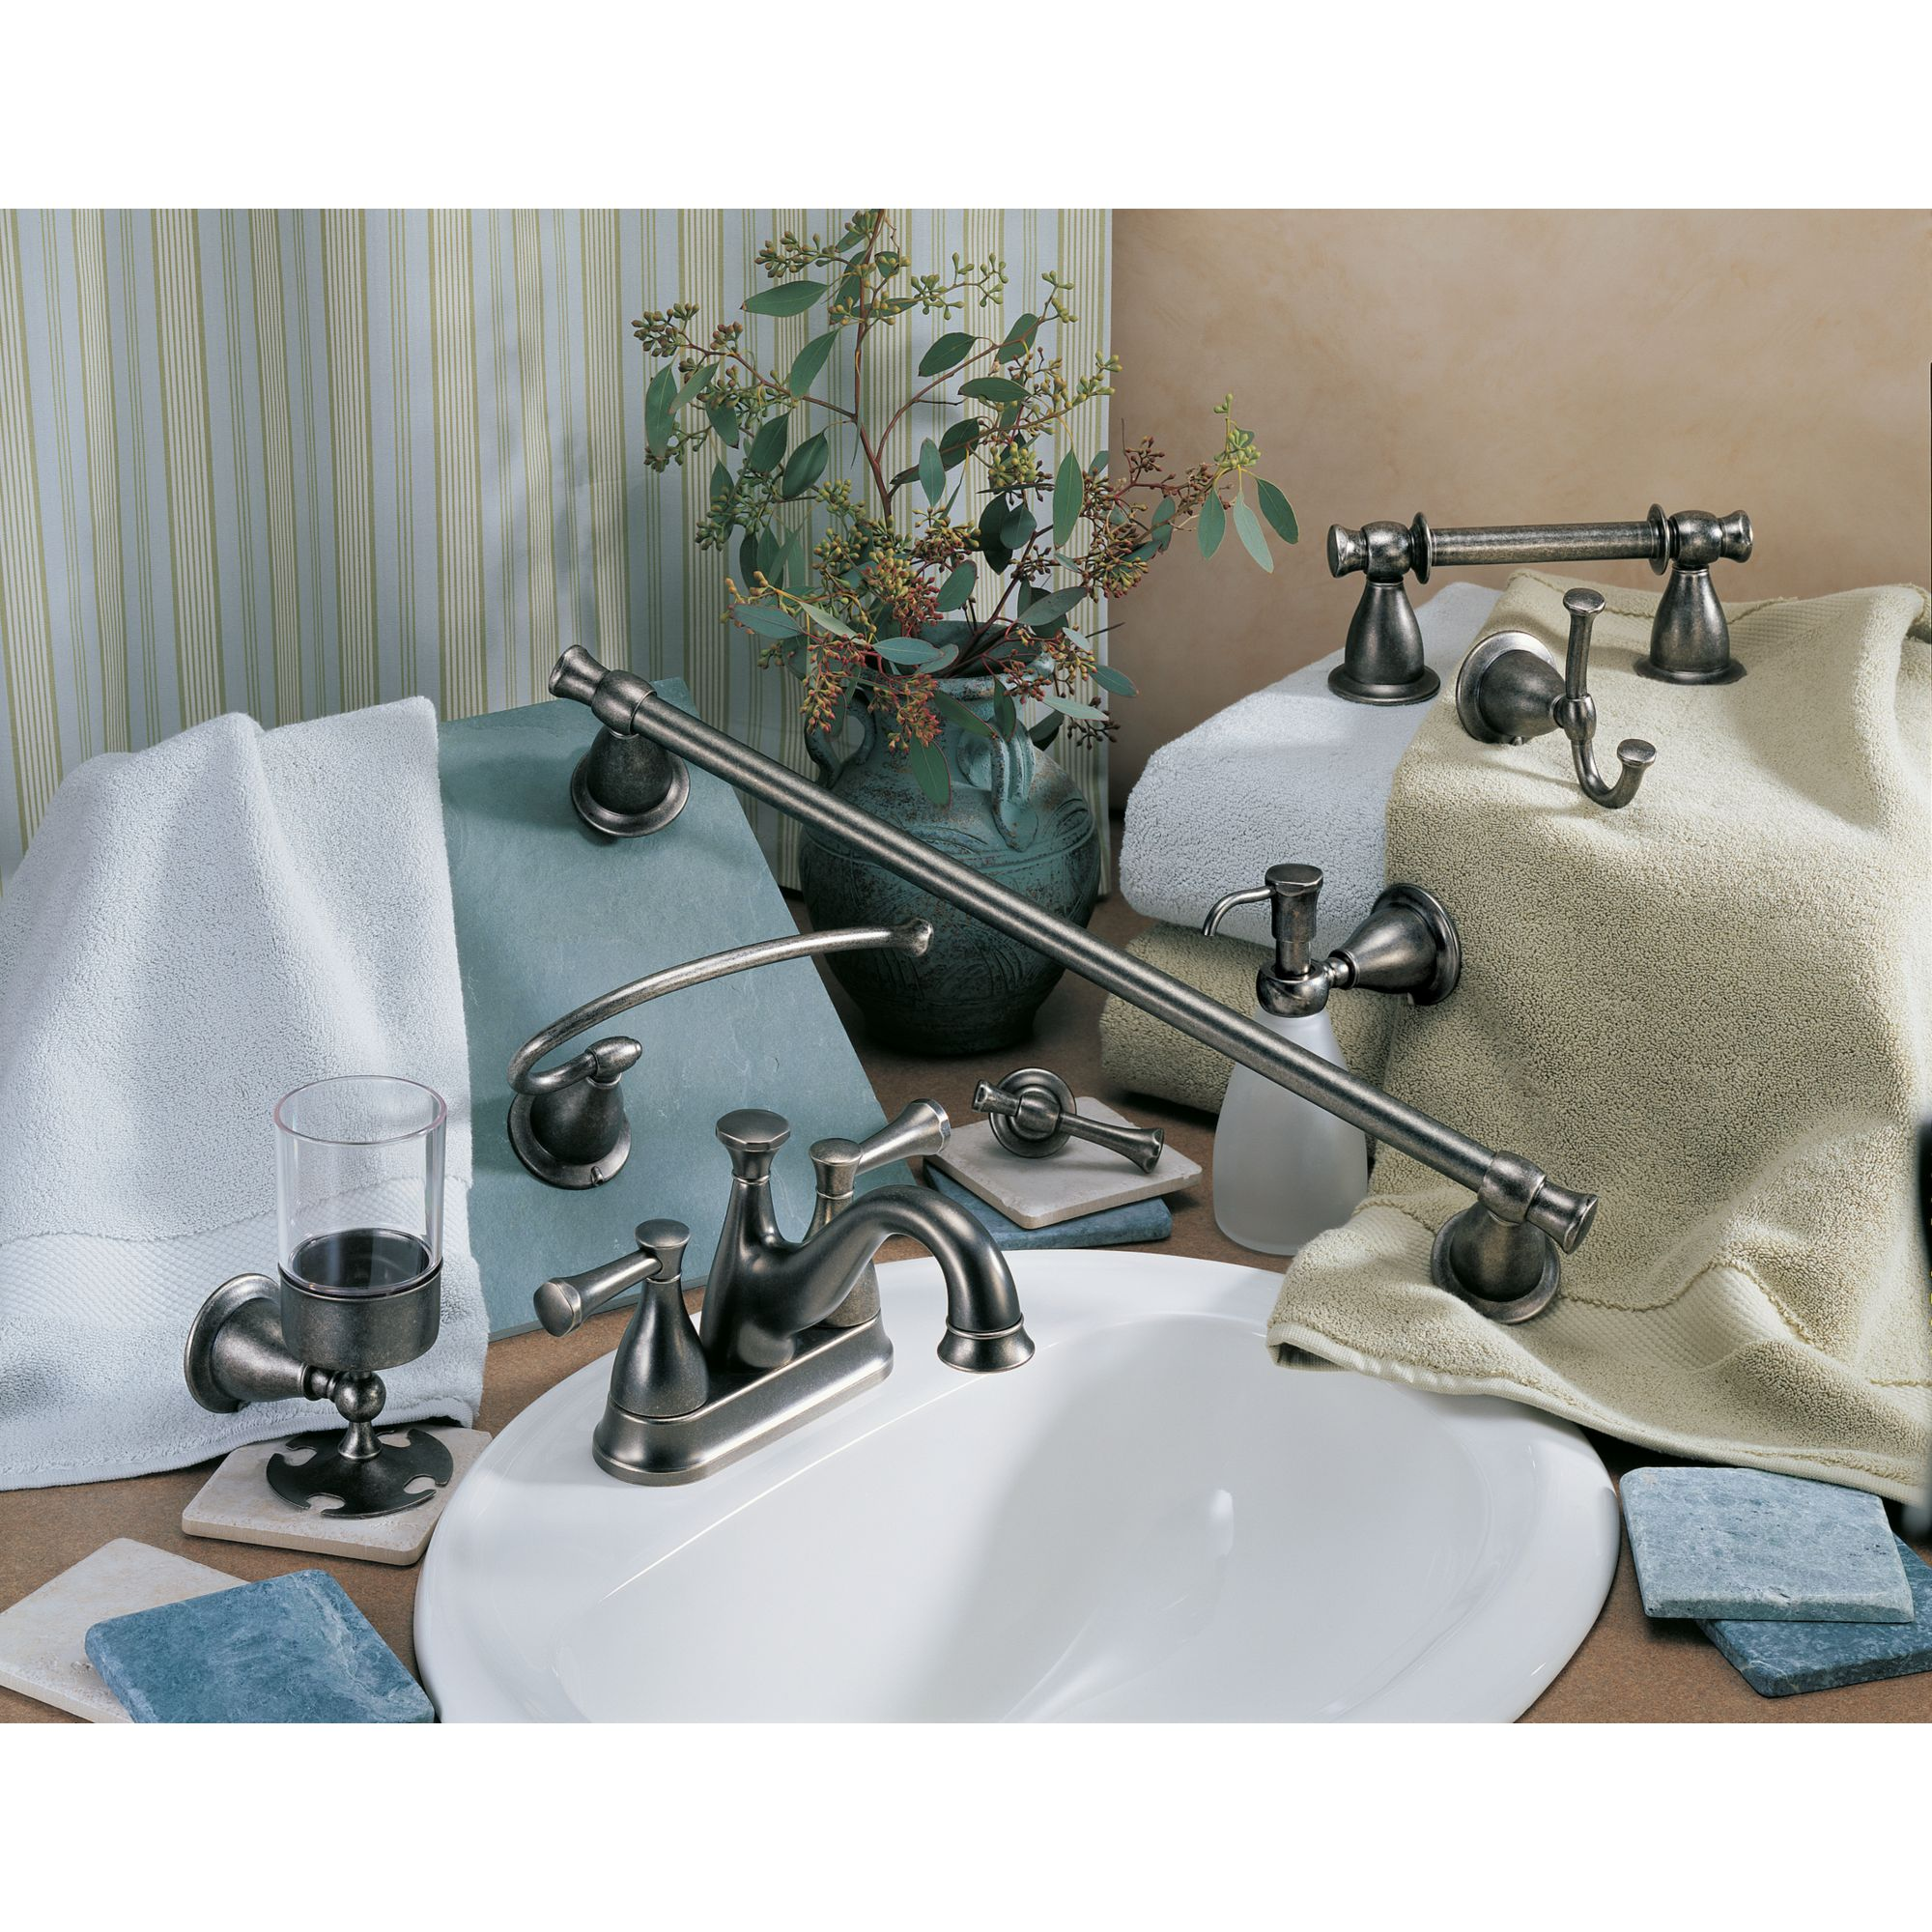 delta bath accessories matching faucet - Bathroom Accessories Delta